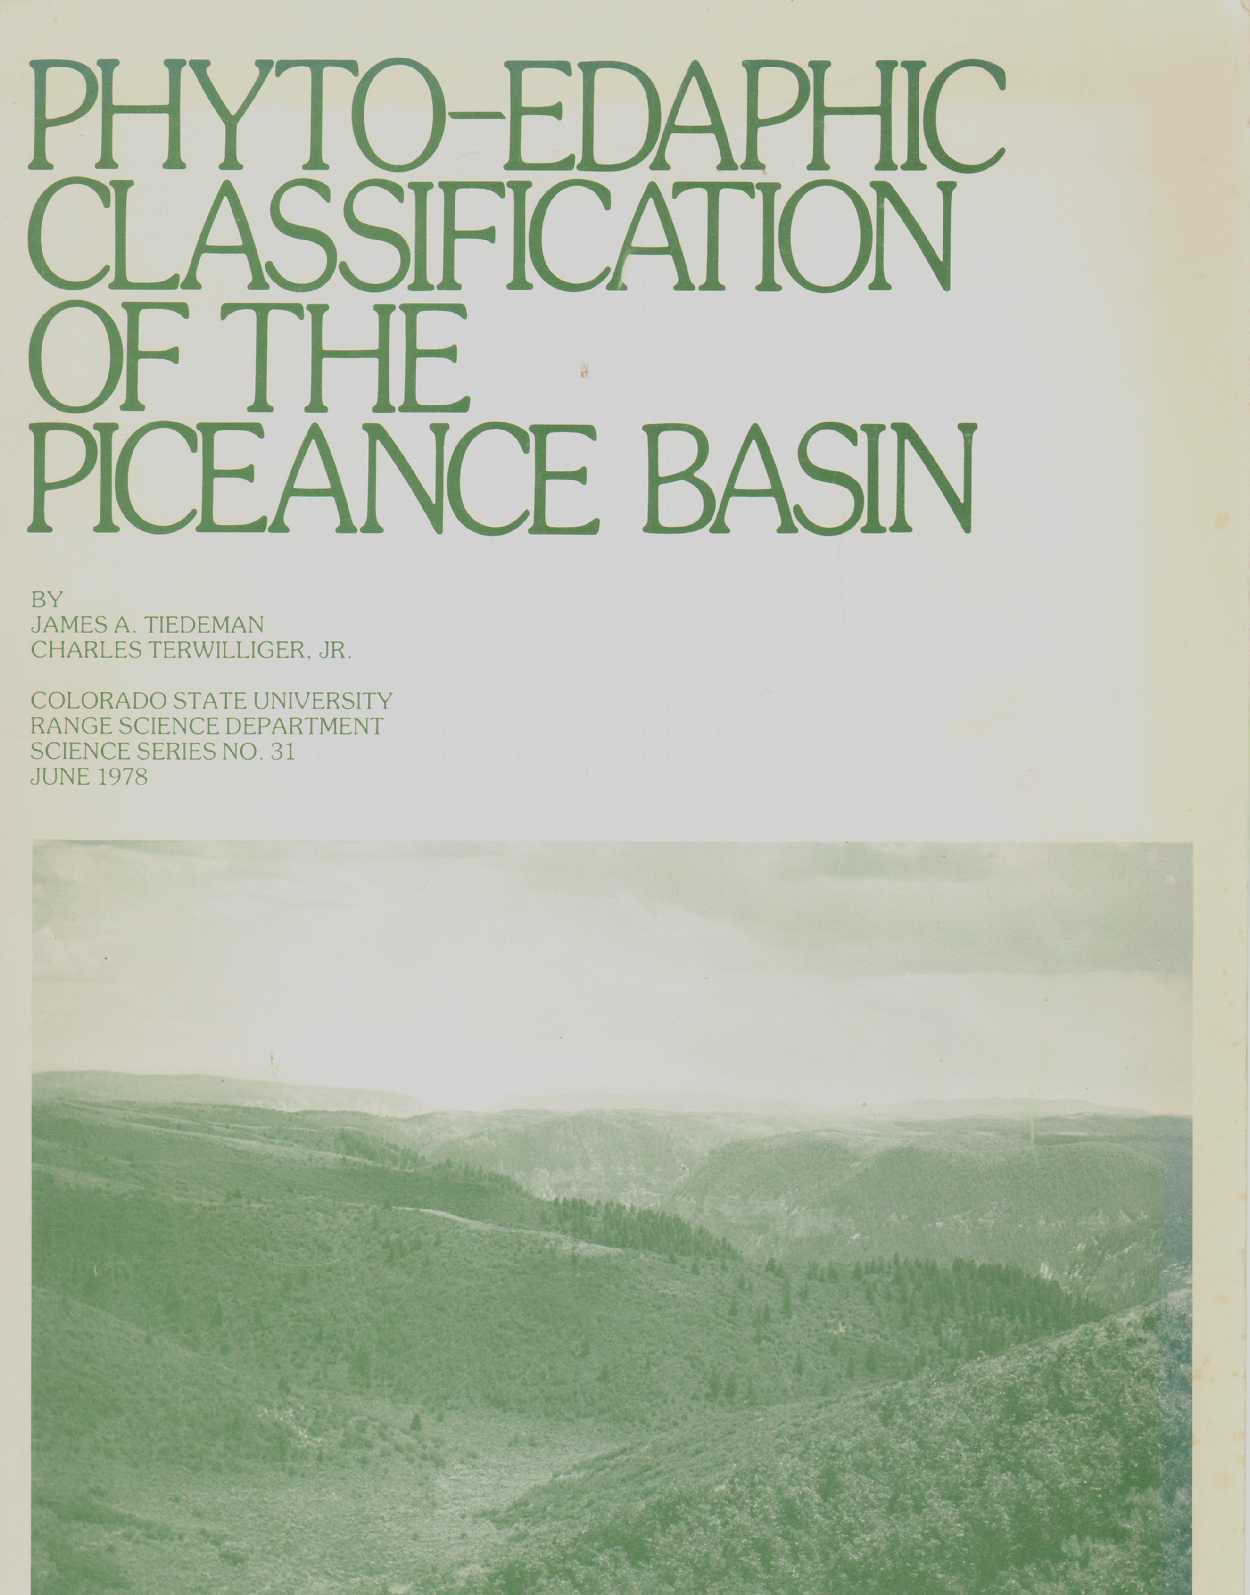 PHYTO-EDAPHIC CLASSIFICATION OF THE PICEANCE BASIN Range Science Department Science Series No. 31, Tiedeman, James A and Charles Terwilliger